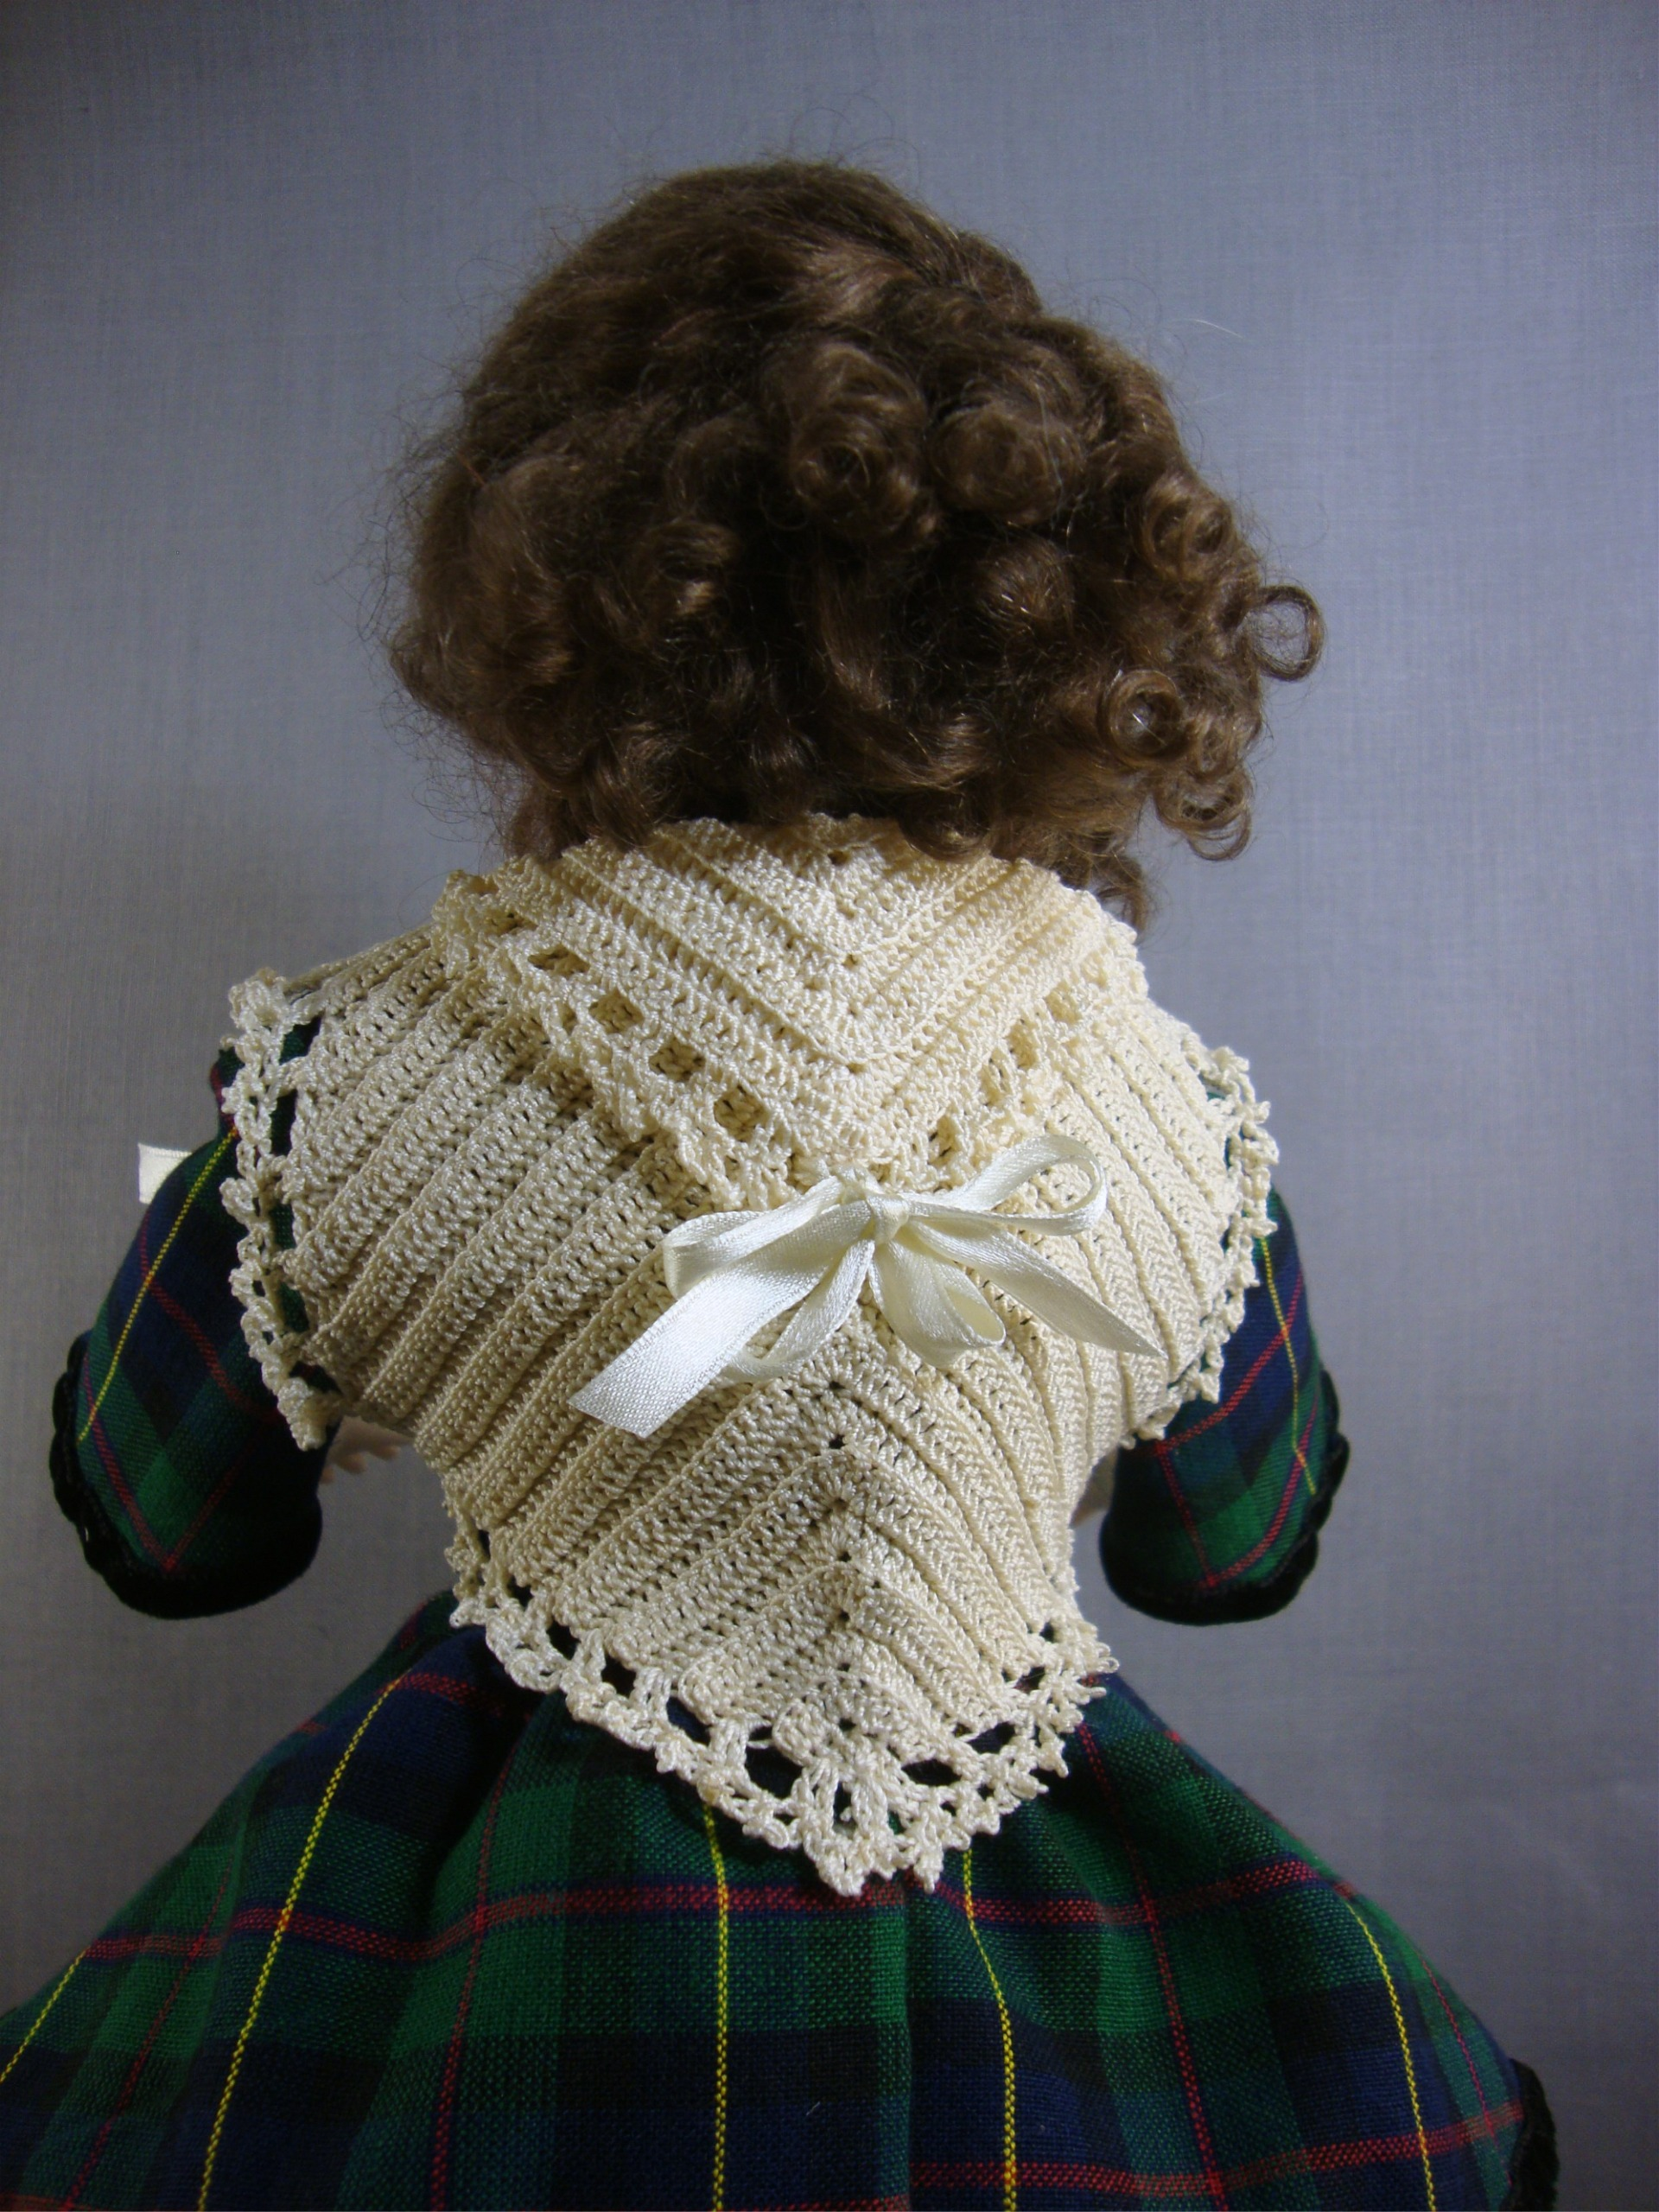 Crochet Pattern for Shawl, Purse and Stockings